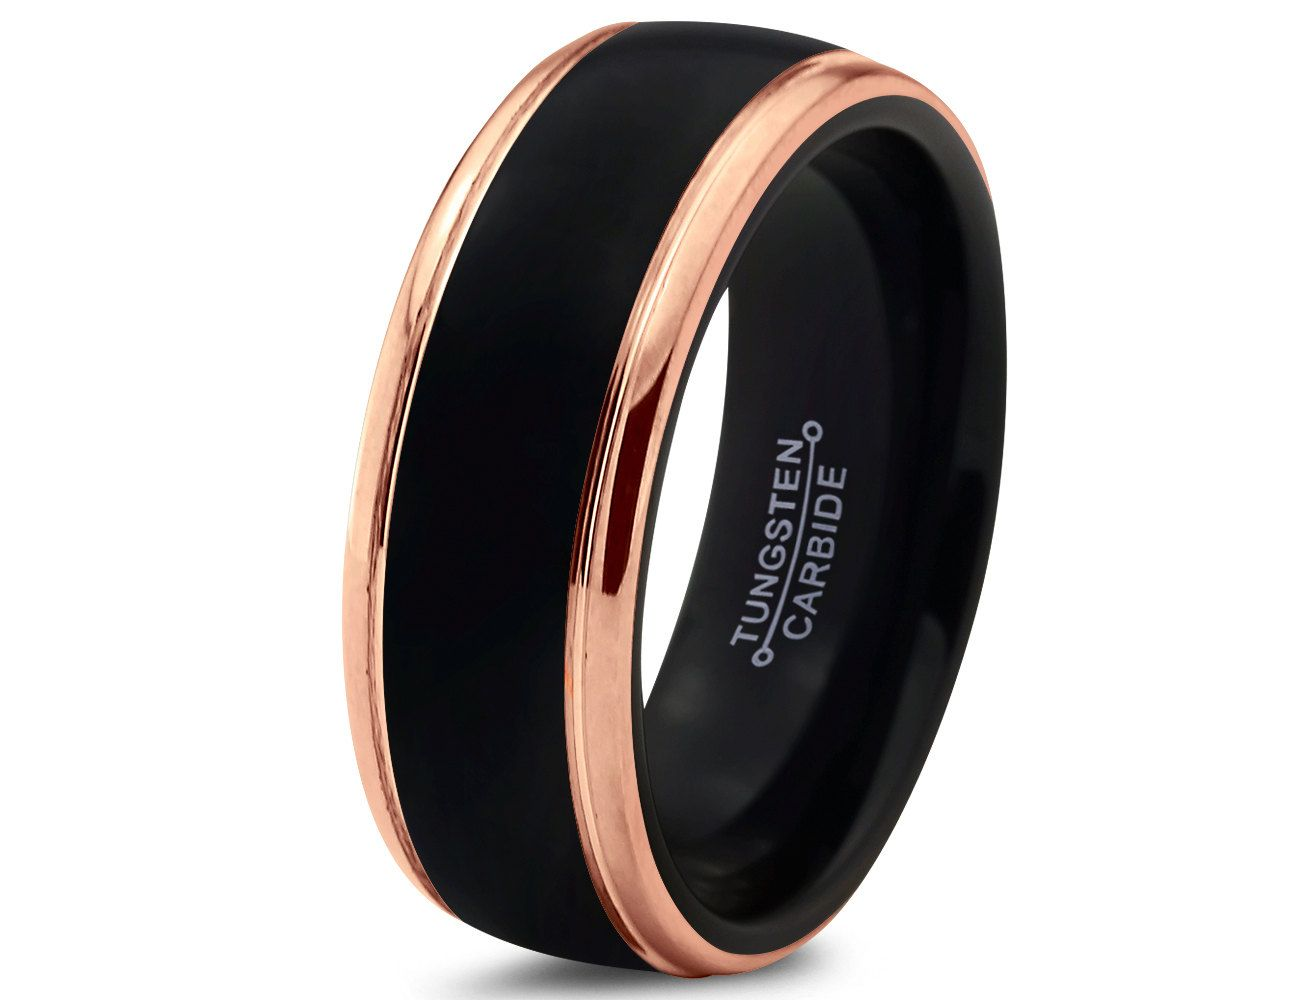 tungsten carbide wedding bands Black Tungsten Ring Rose Gold Wedding Band Ring Tungsten Carbide 8mm 18K Tungsten Ring Man Wedding